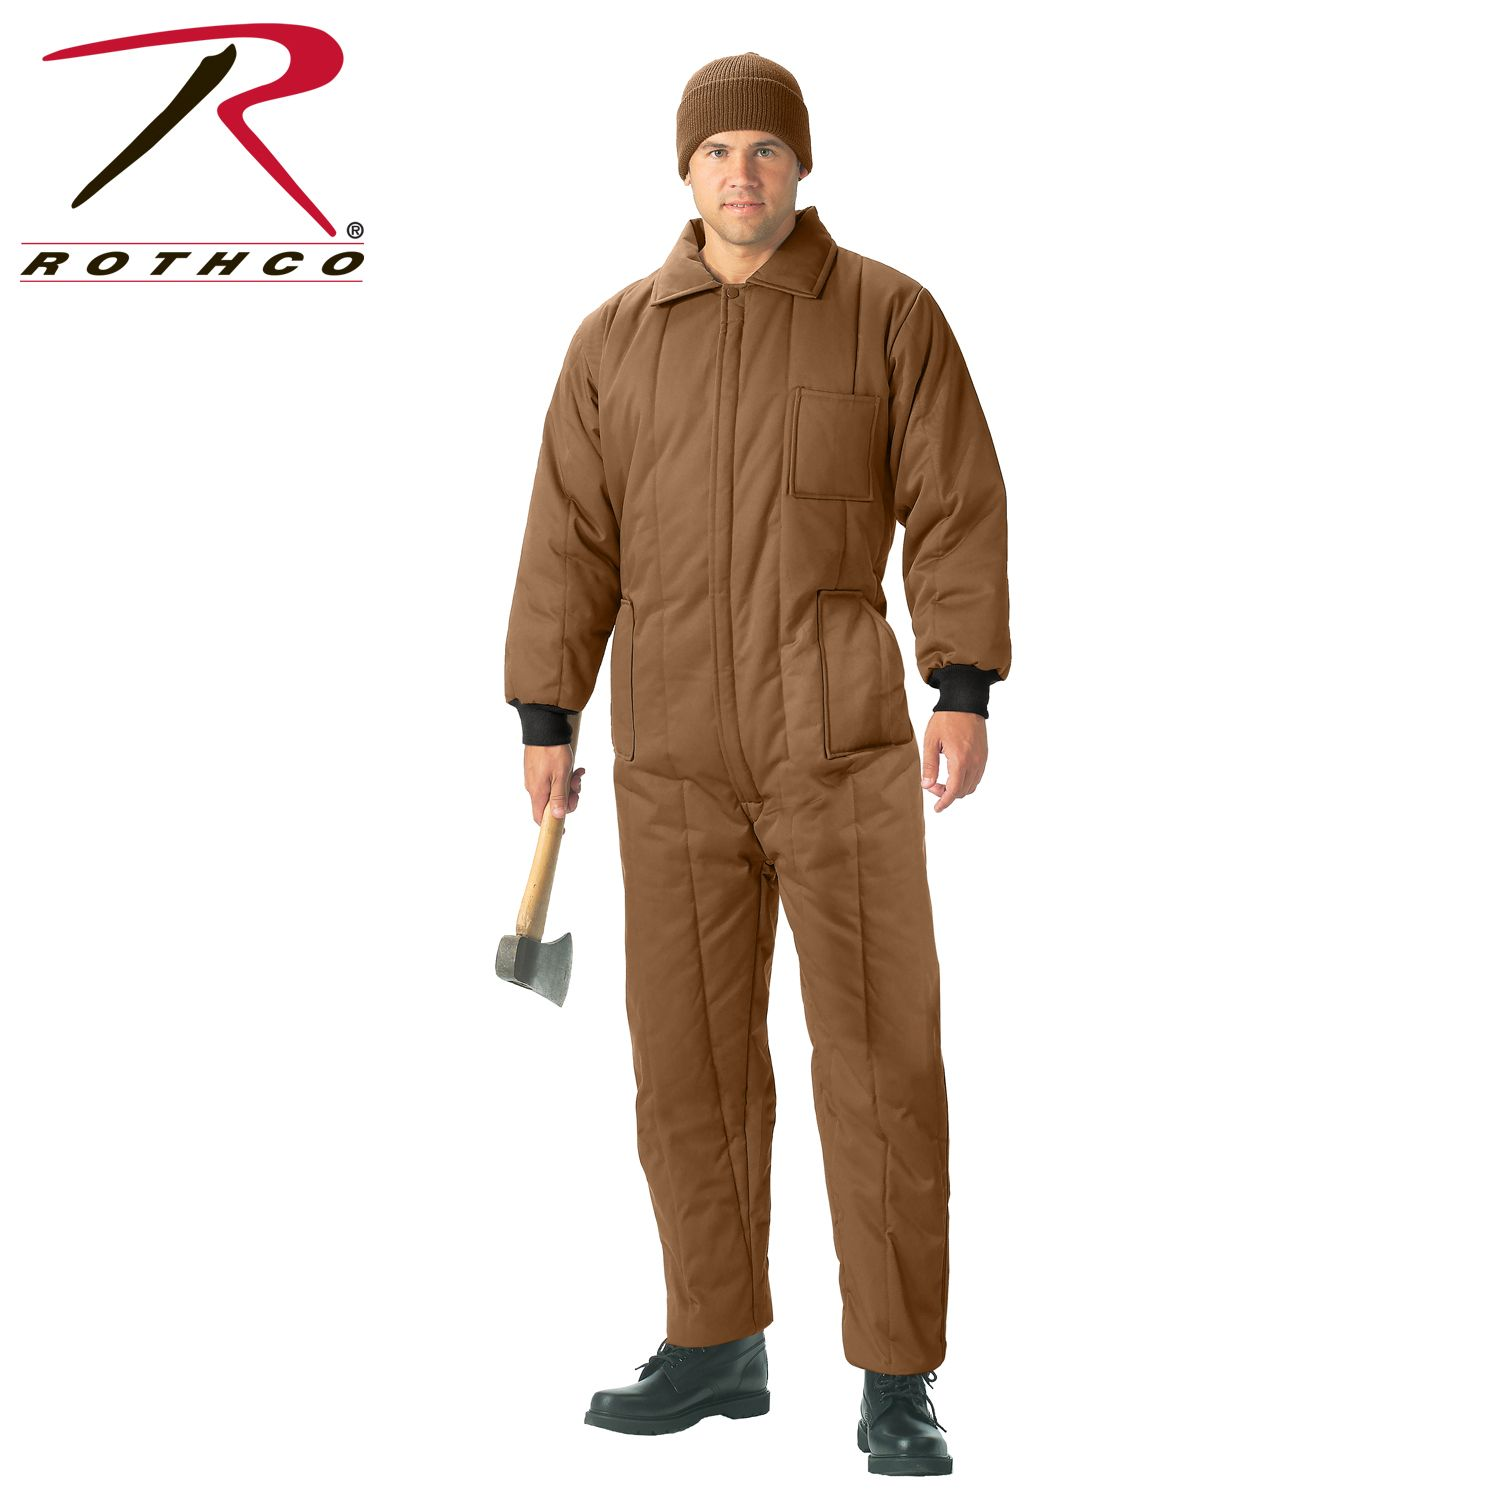 Rothco Insulated Coveralls-Rothco